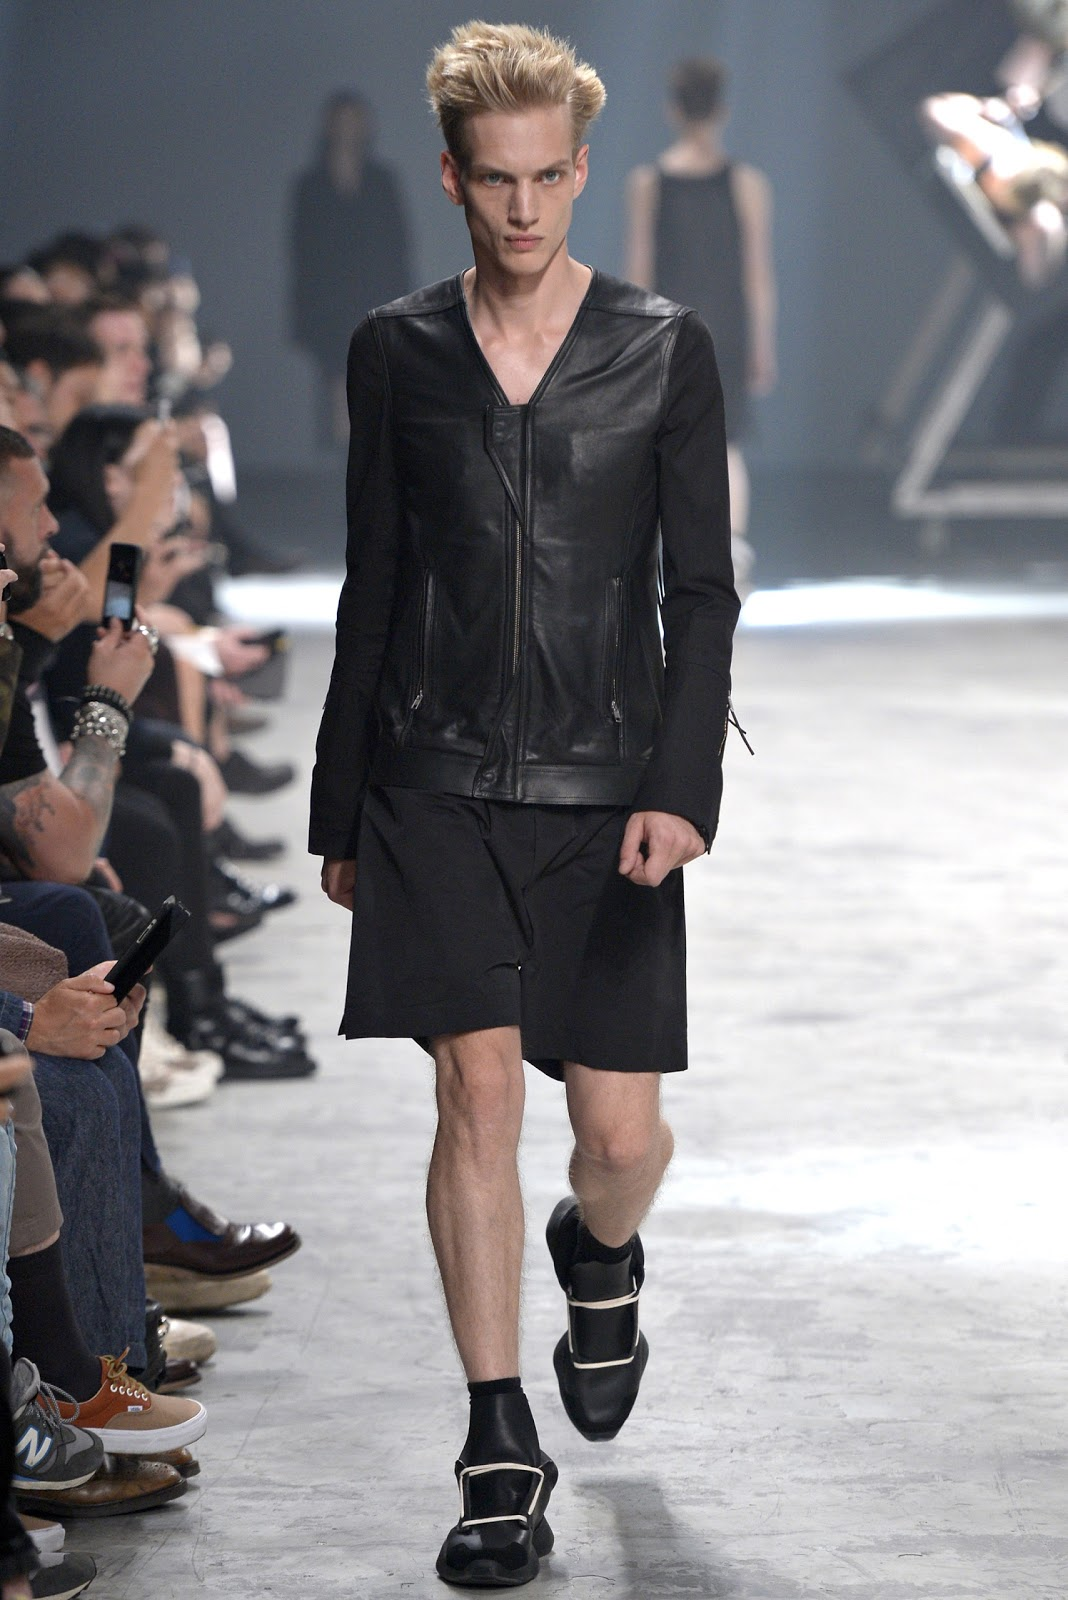 Male model otaku paul boche spring summer 2014 ny paris for Rick owens milan